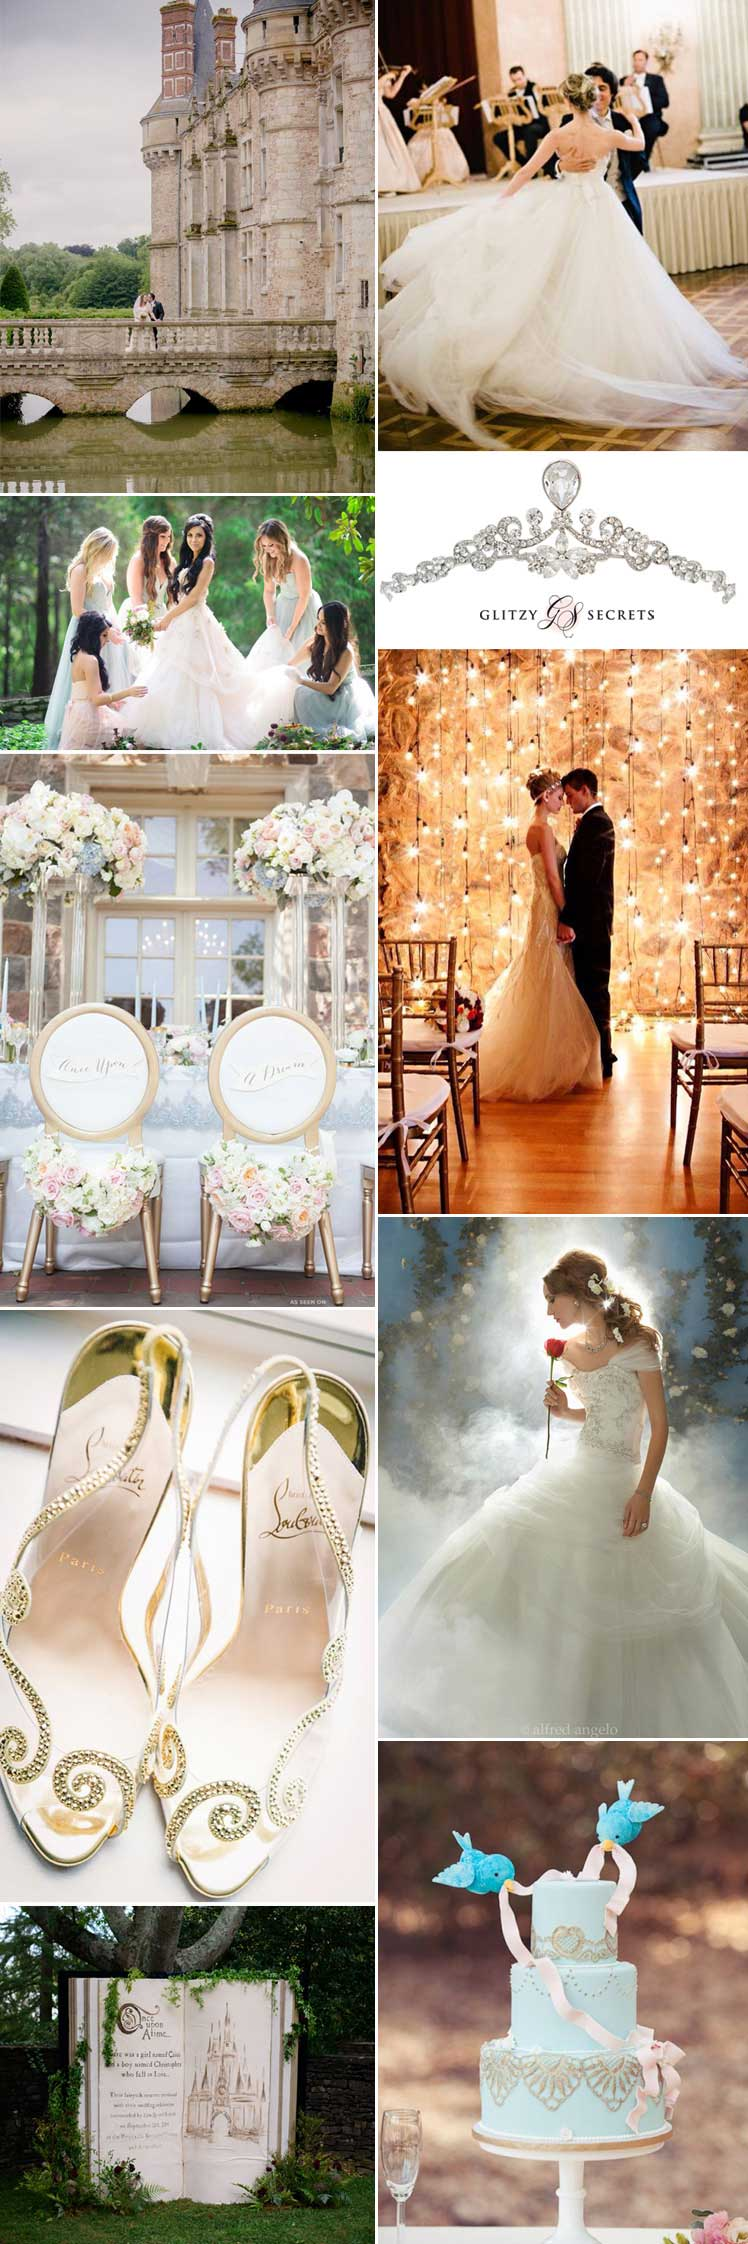 Fairytale wedding theme ideas